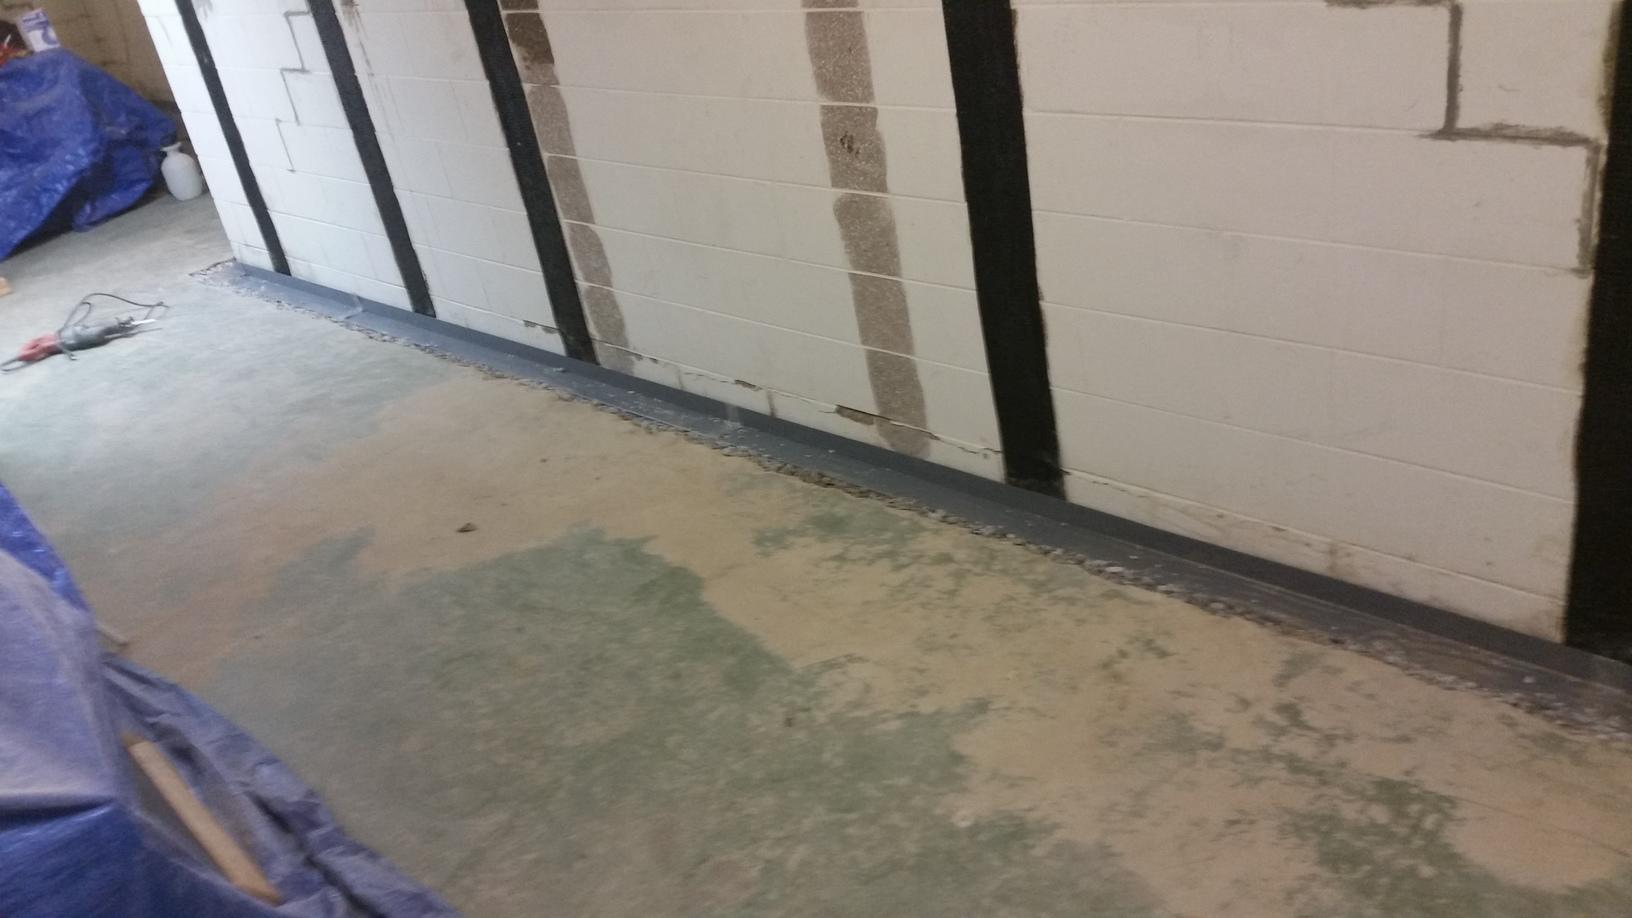 WaterGuard is installed along the perimeter of the basement.